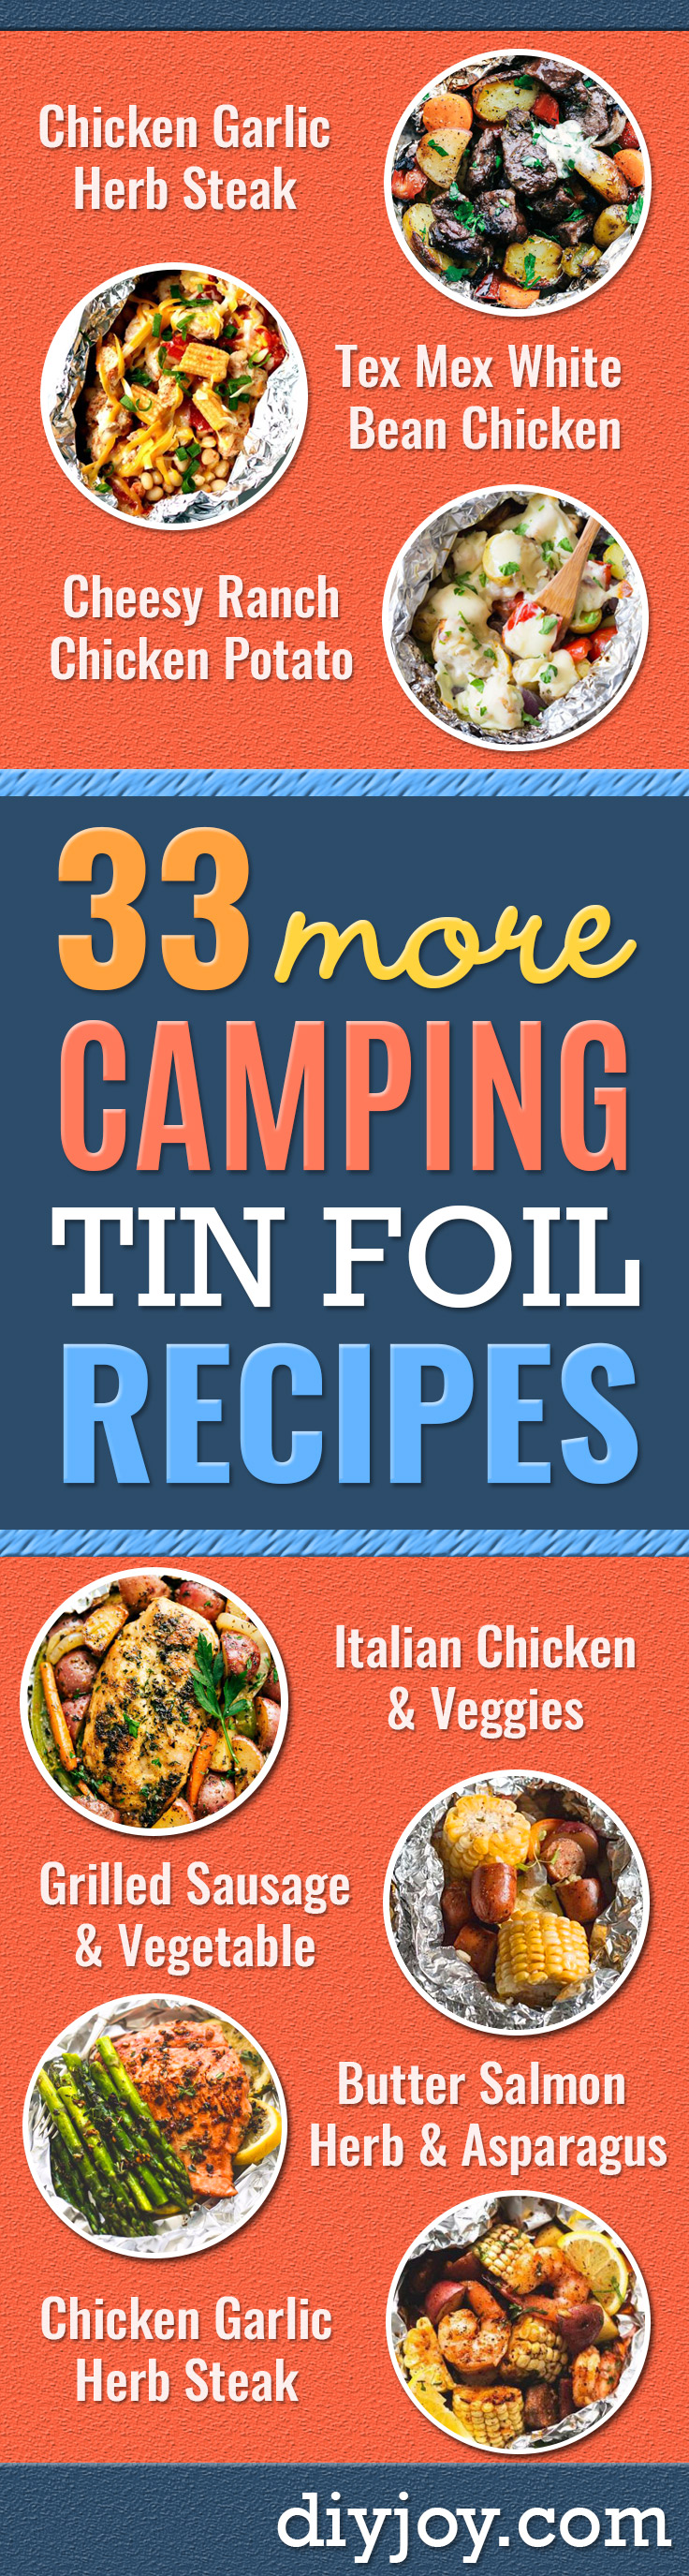 Tin Foil Camping Recipes - DIY Tin Foil Dinners, Ideas for Camping Trips and On Grill. Hamburger, Chicken, Healthy, Fish, Steak , Easy Make Ahead Recipe Ideas for the Campfire. Breakfast, Lunch, Dinner and Dessert, Snacks all Wrapped in Foil for Quick Cooking #camping #camping recipes